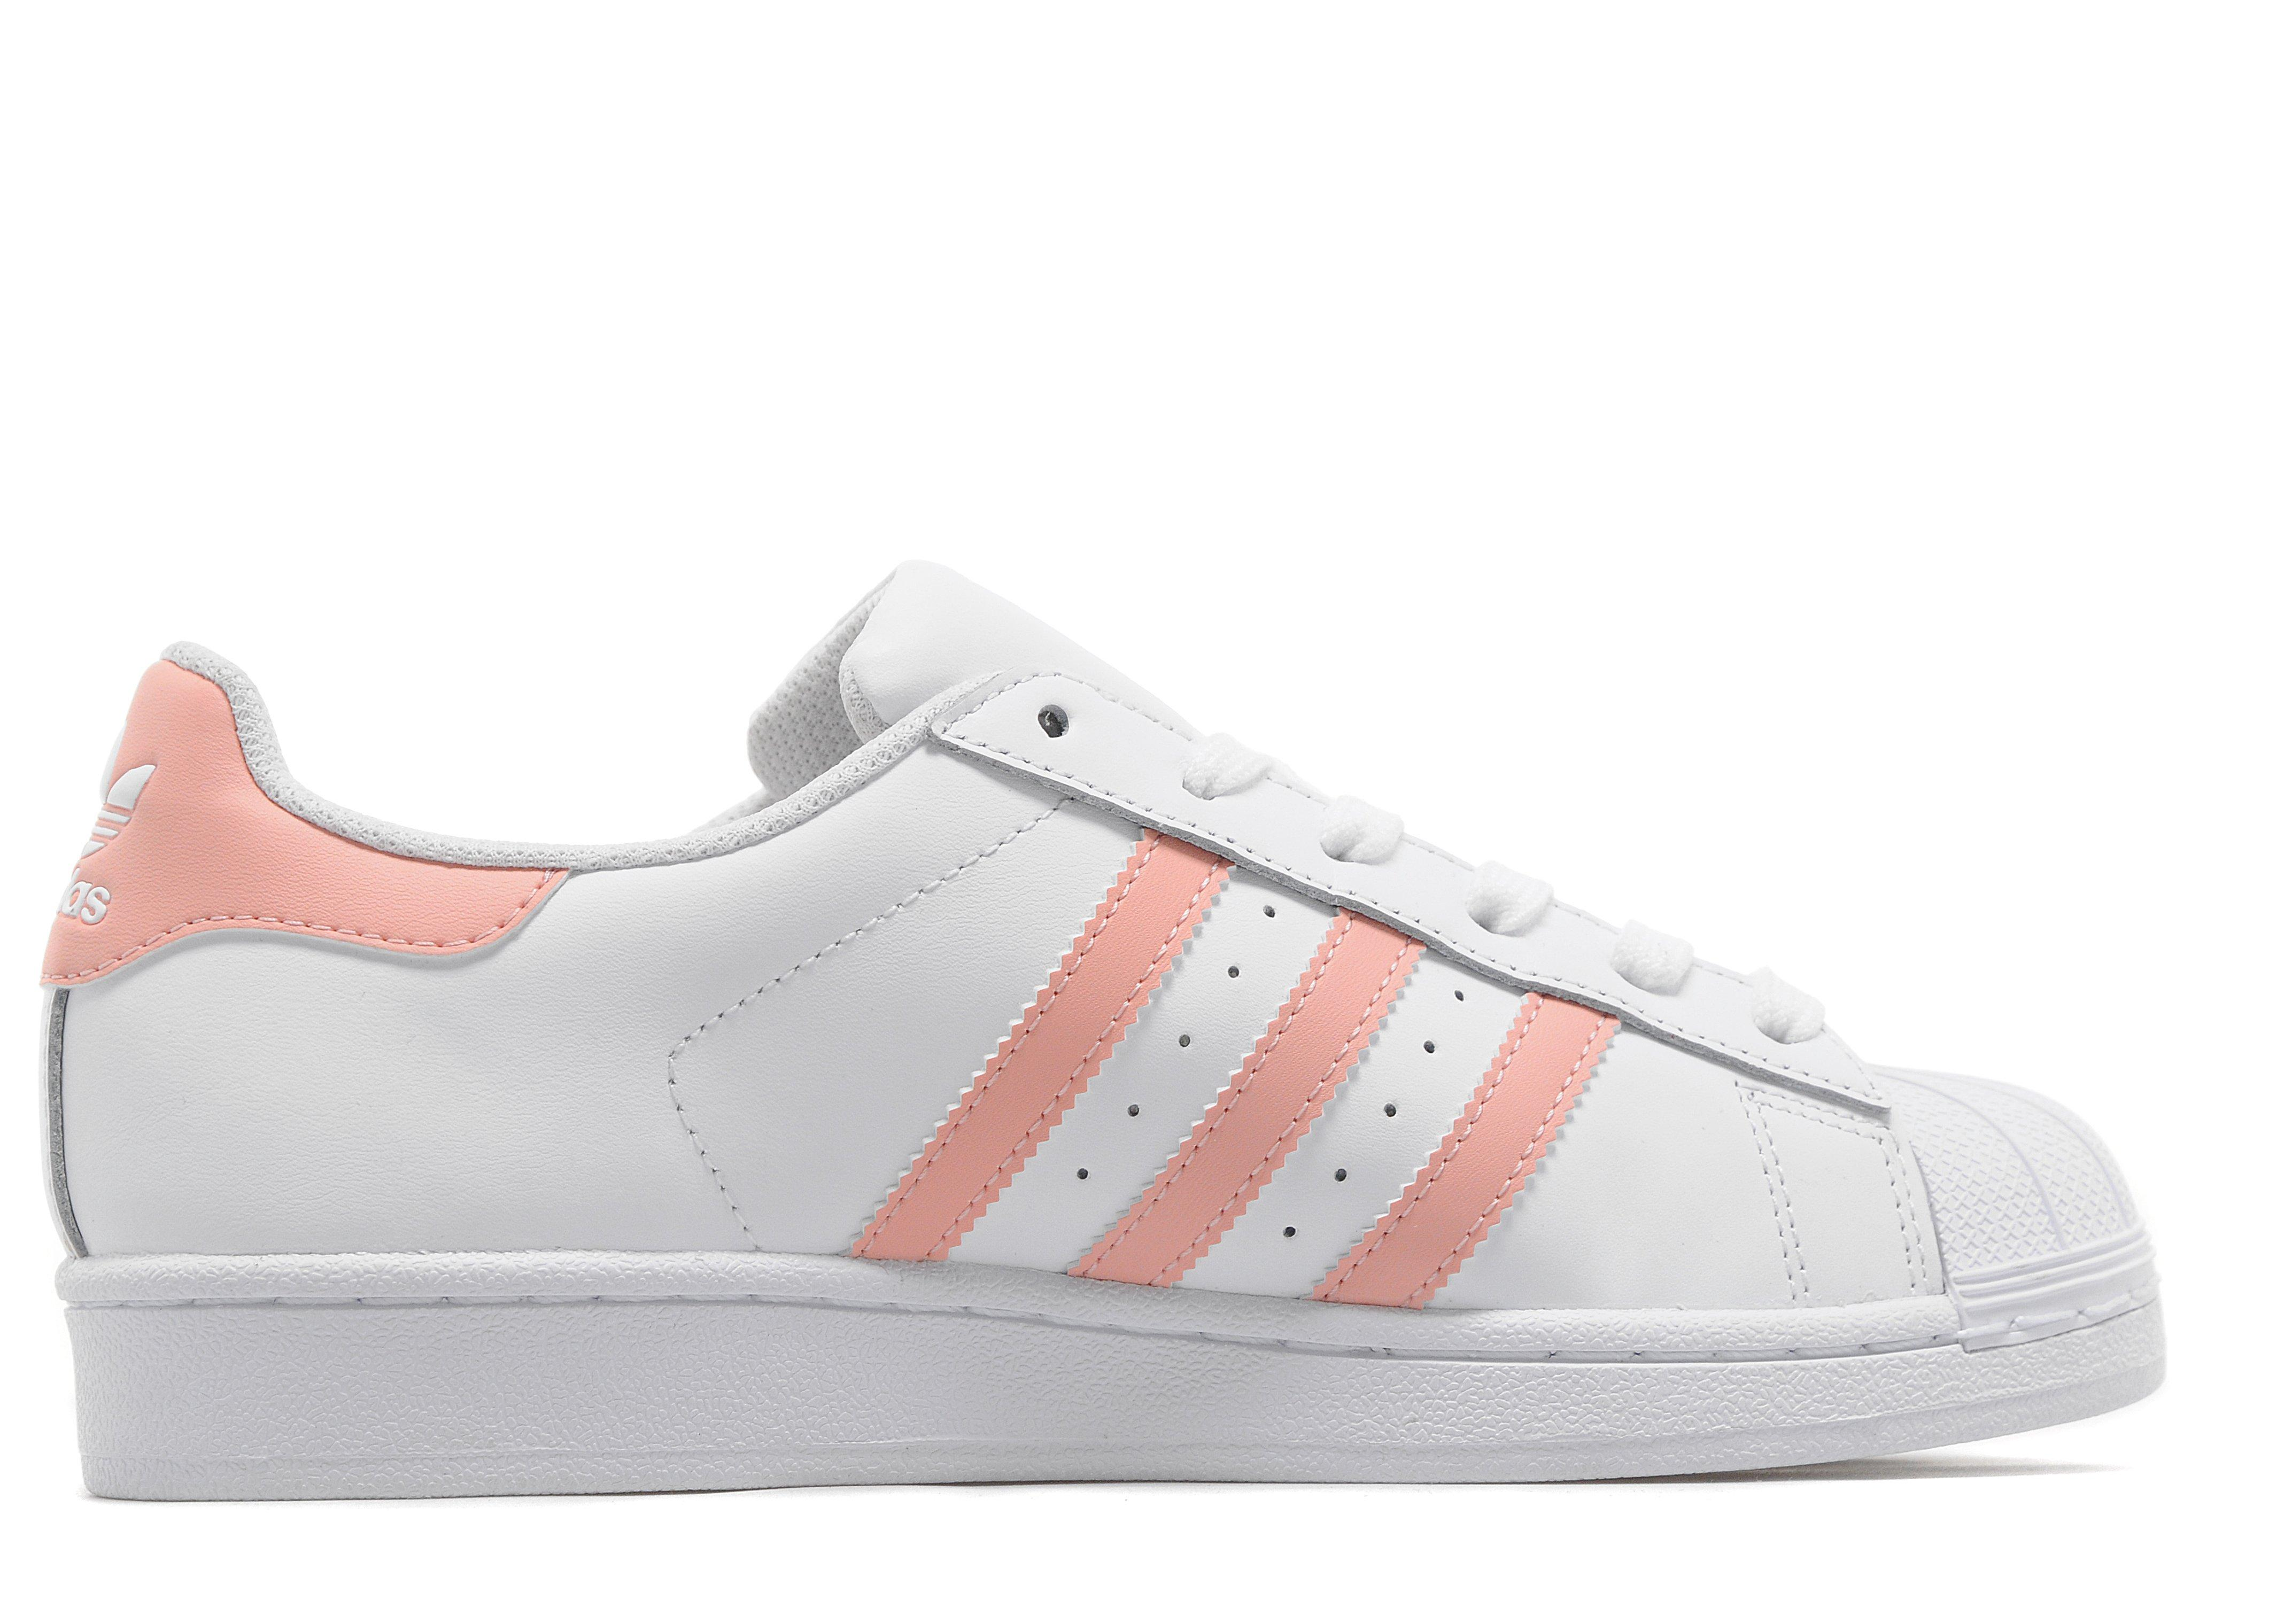 953412f6b84 ADIDAS SUPERSTAR PEACH COLOR on The Hunt